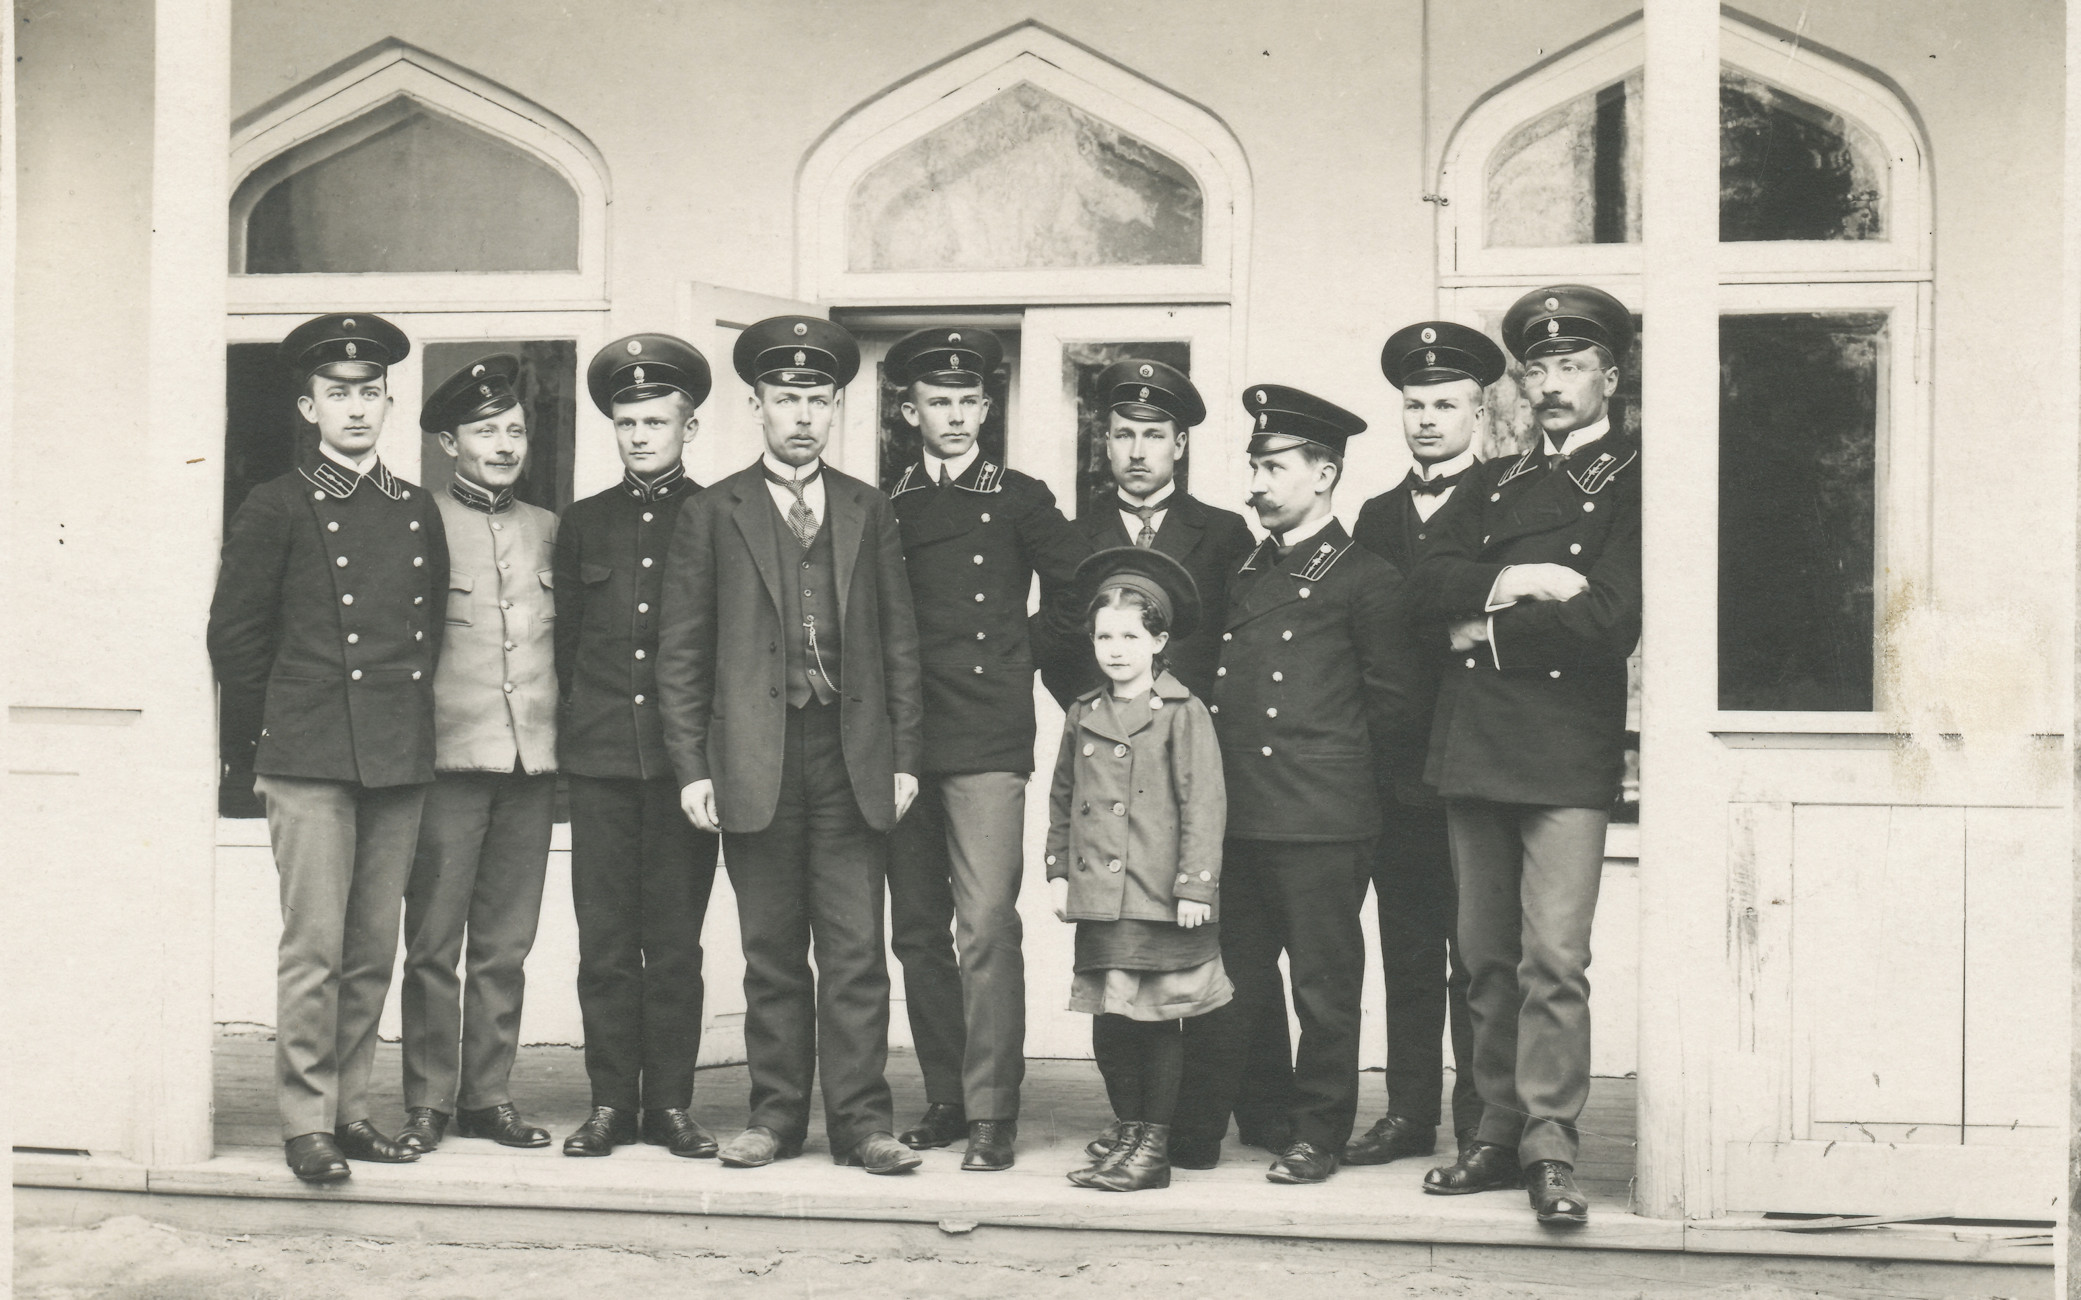 Postal workers in 1915  (on the inner courtyard porch)